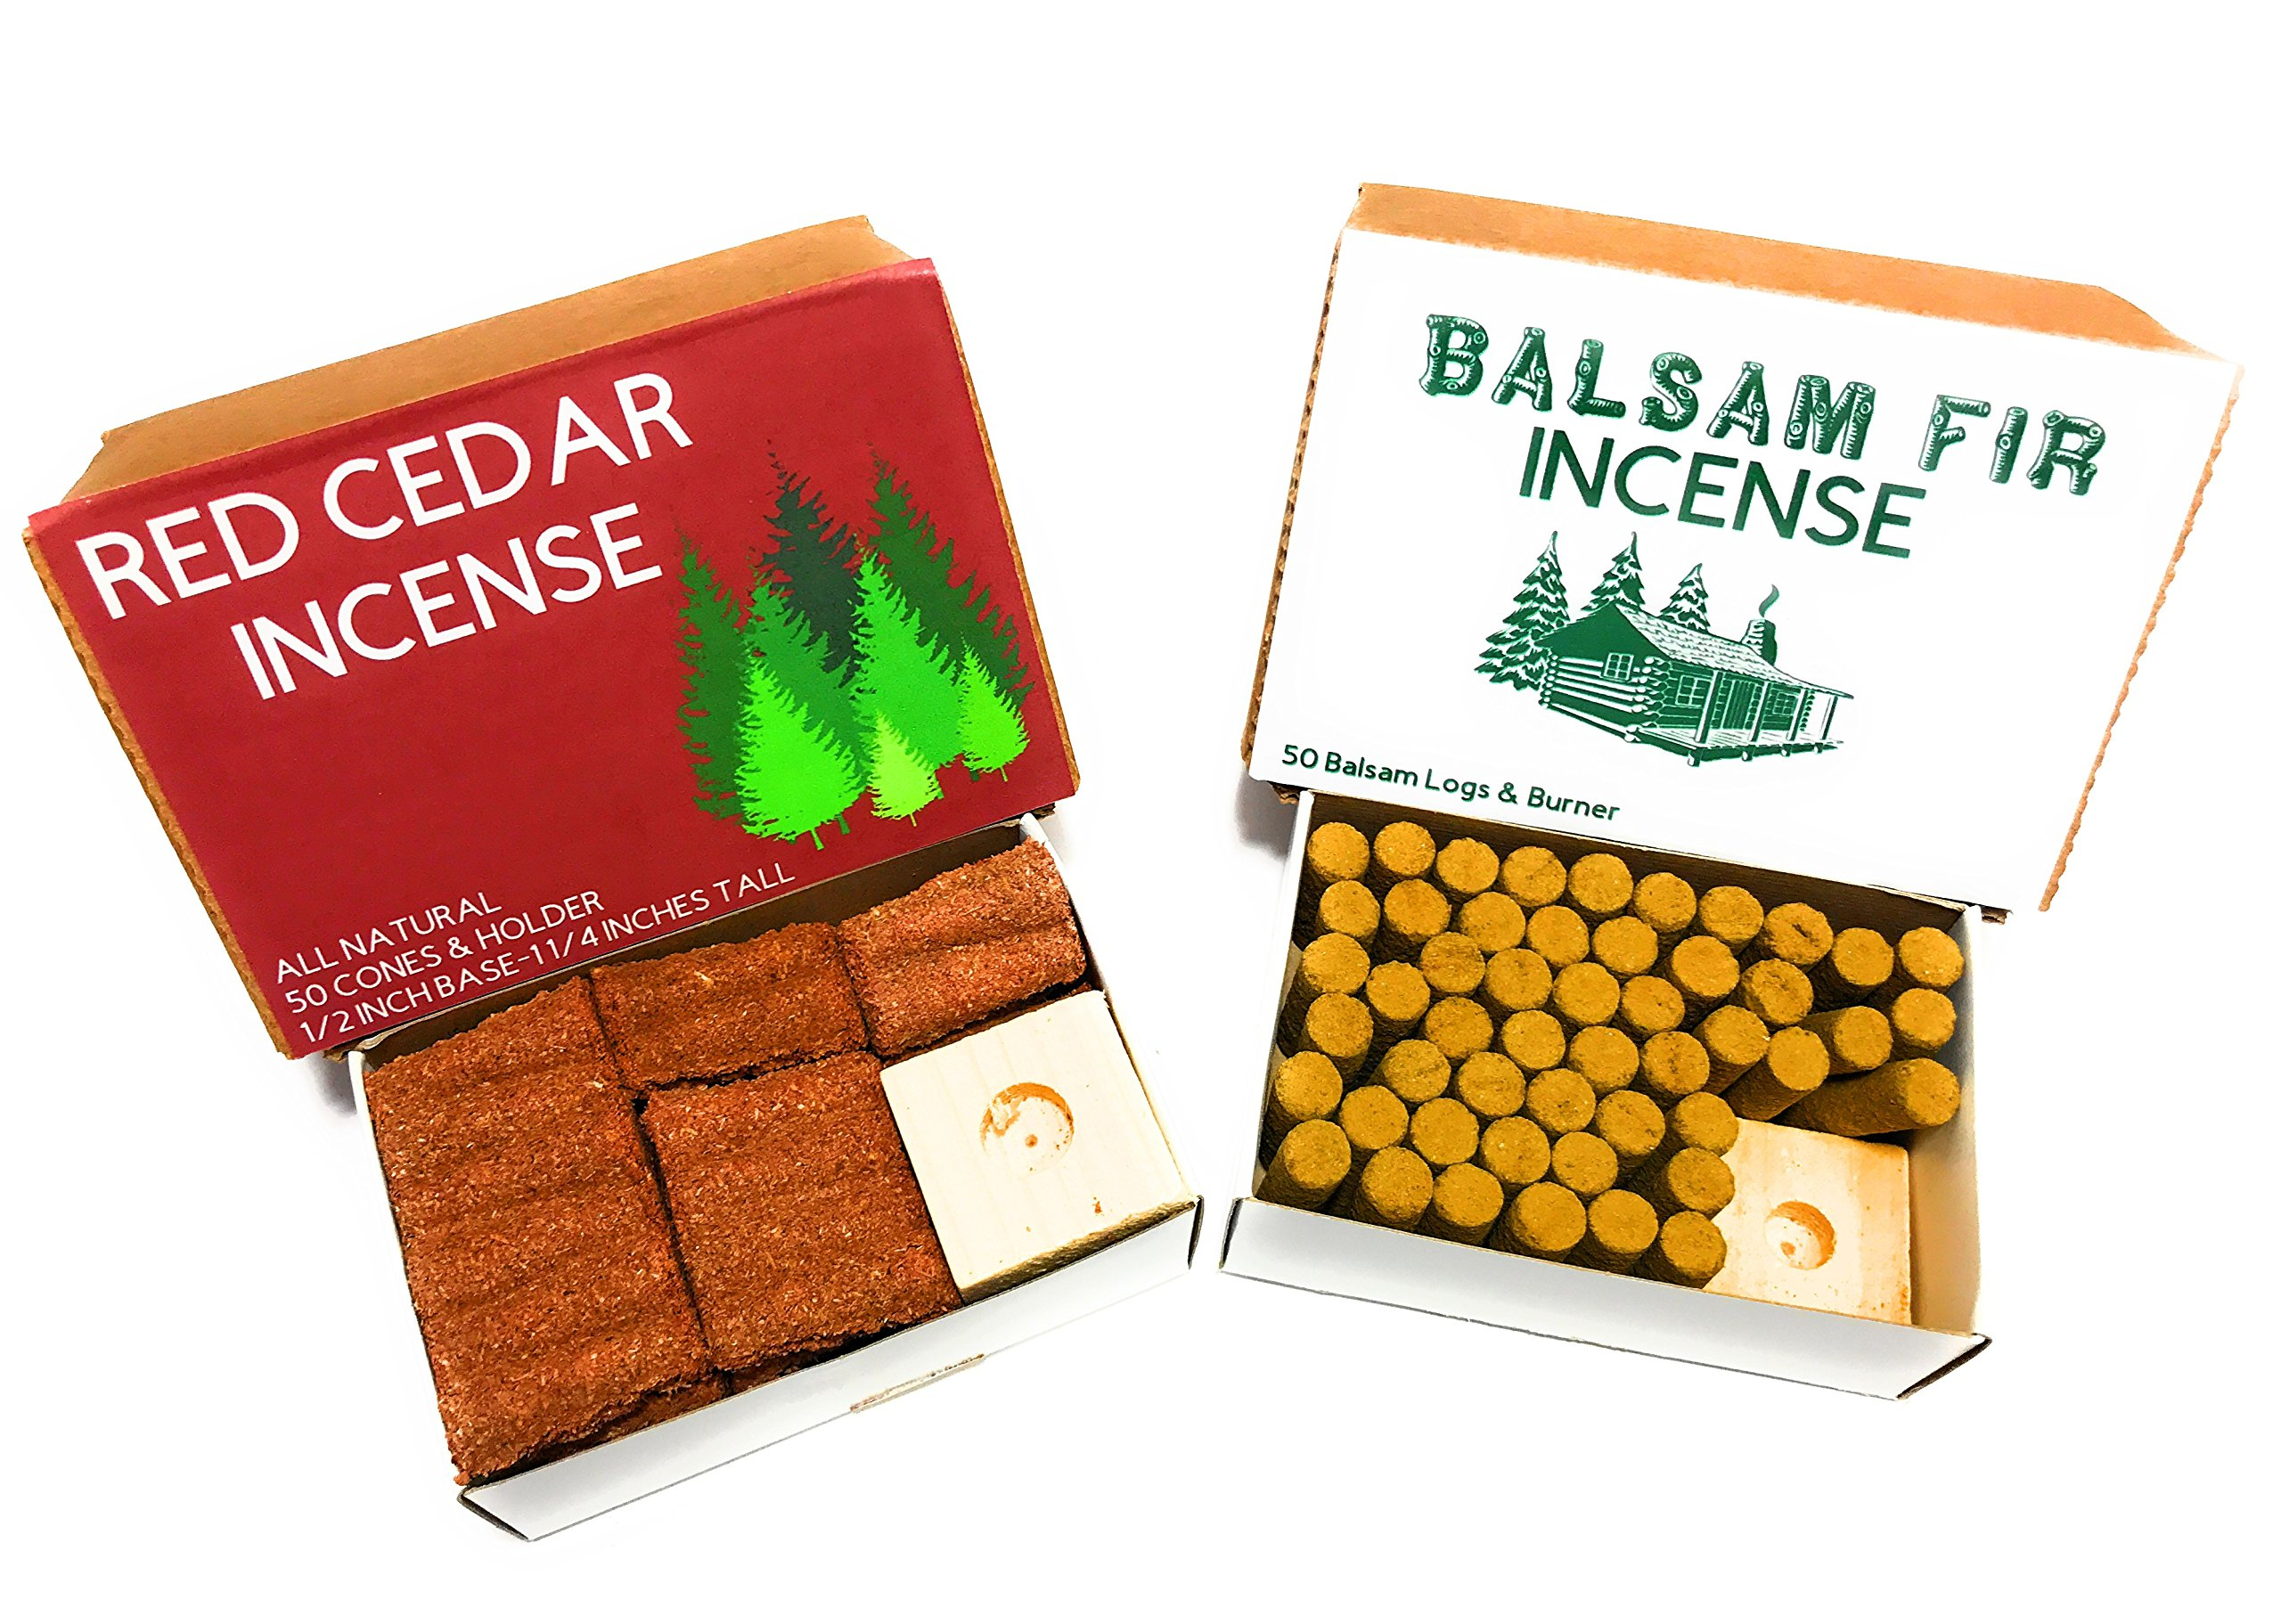 J & D's Everyday Needs Balsam Fir and Cedar Incense Cones with Holder Bundle by J & D's Everyday Needs